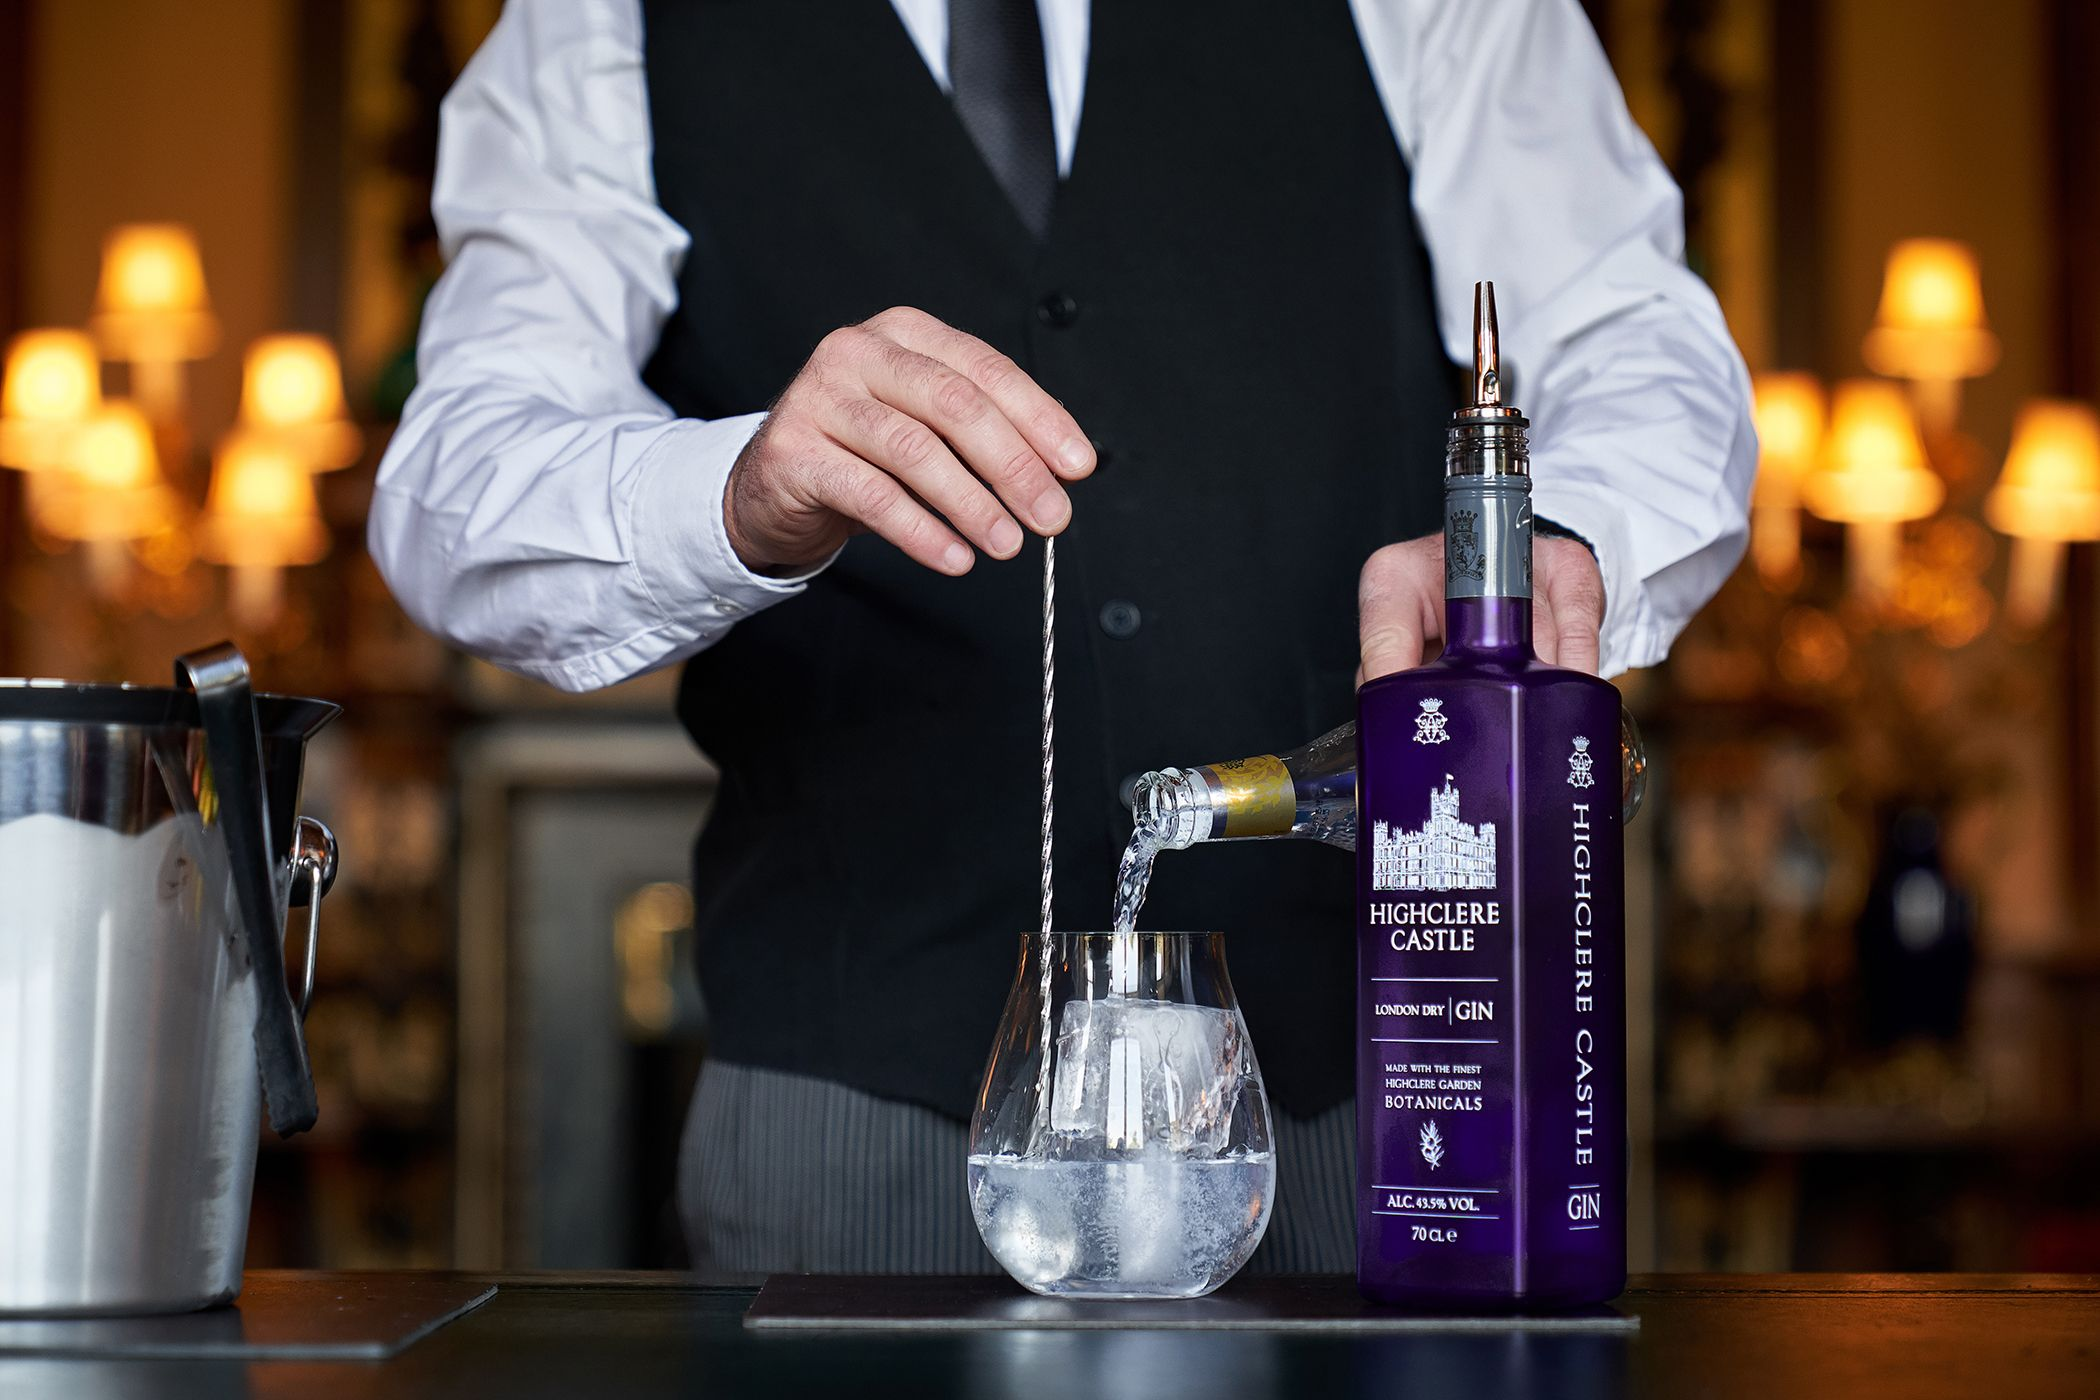 Highclere Castle, The Real Downton Abbey, Is Coming Out With Its Very Own Gin